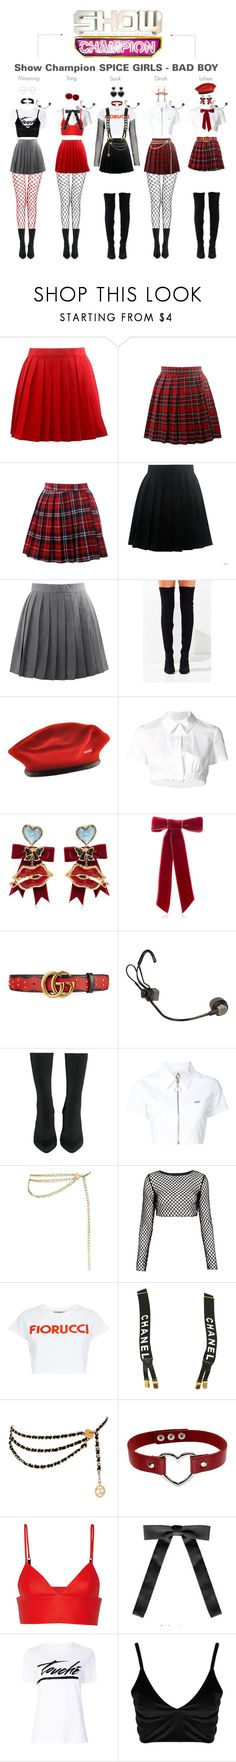 """Show Champion SPICE GIRLS - BAD BOY"" by spicegirls-official ❤ liked on Polyvore featuring Jeffrey Campbell, kangol, Monse, Dsquared2, Jennifer Behr, Gucci, UNIF, Chanel, Motel and Fiorucci"